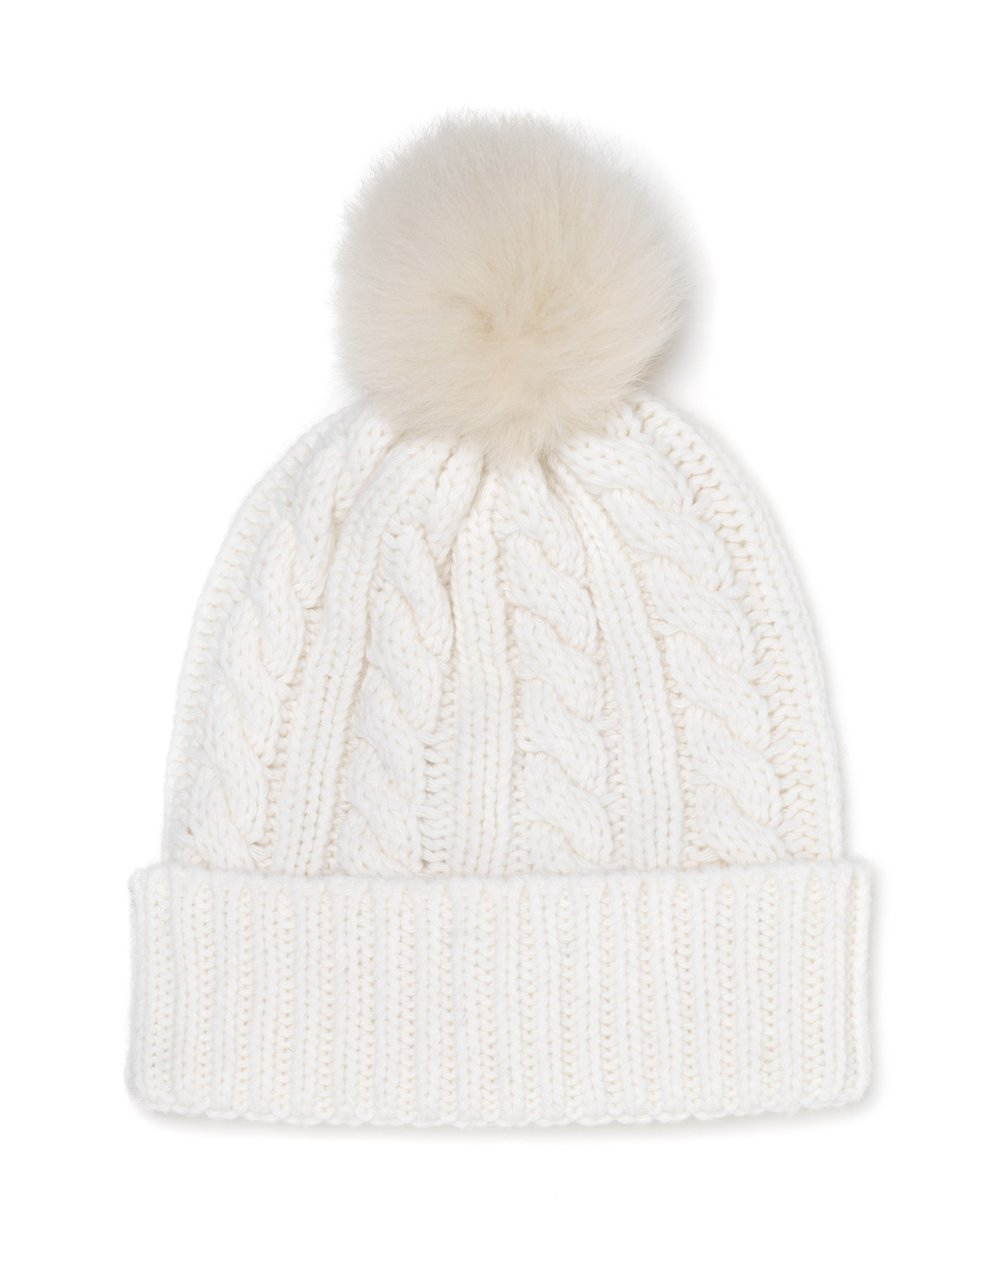 meandem_cream_bobblehat.jpg